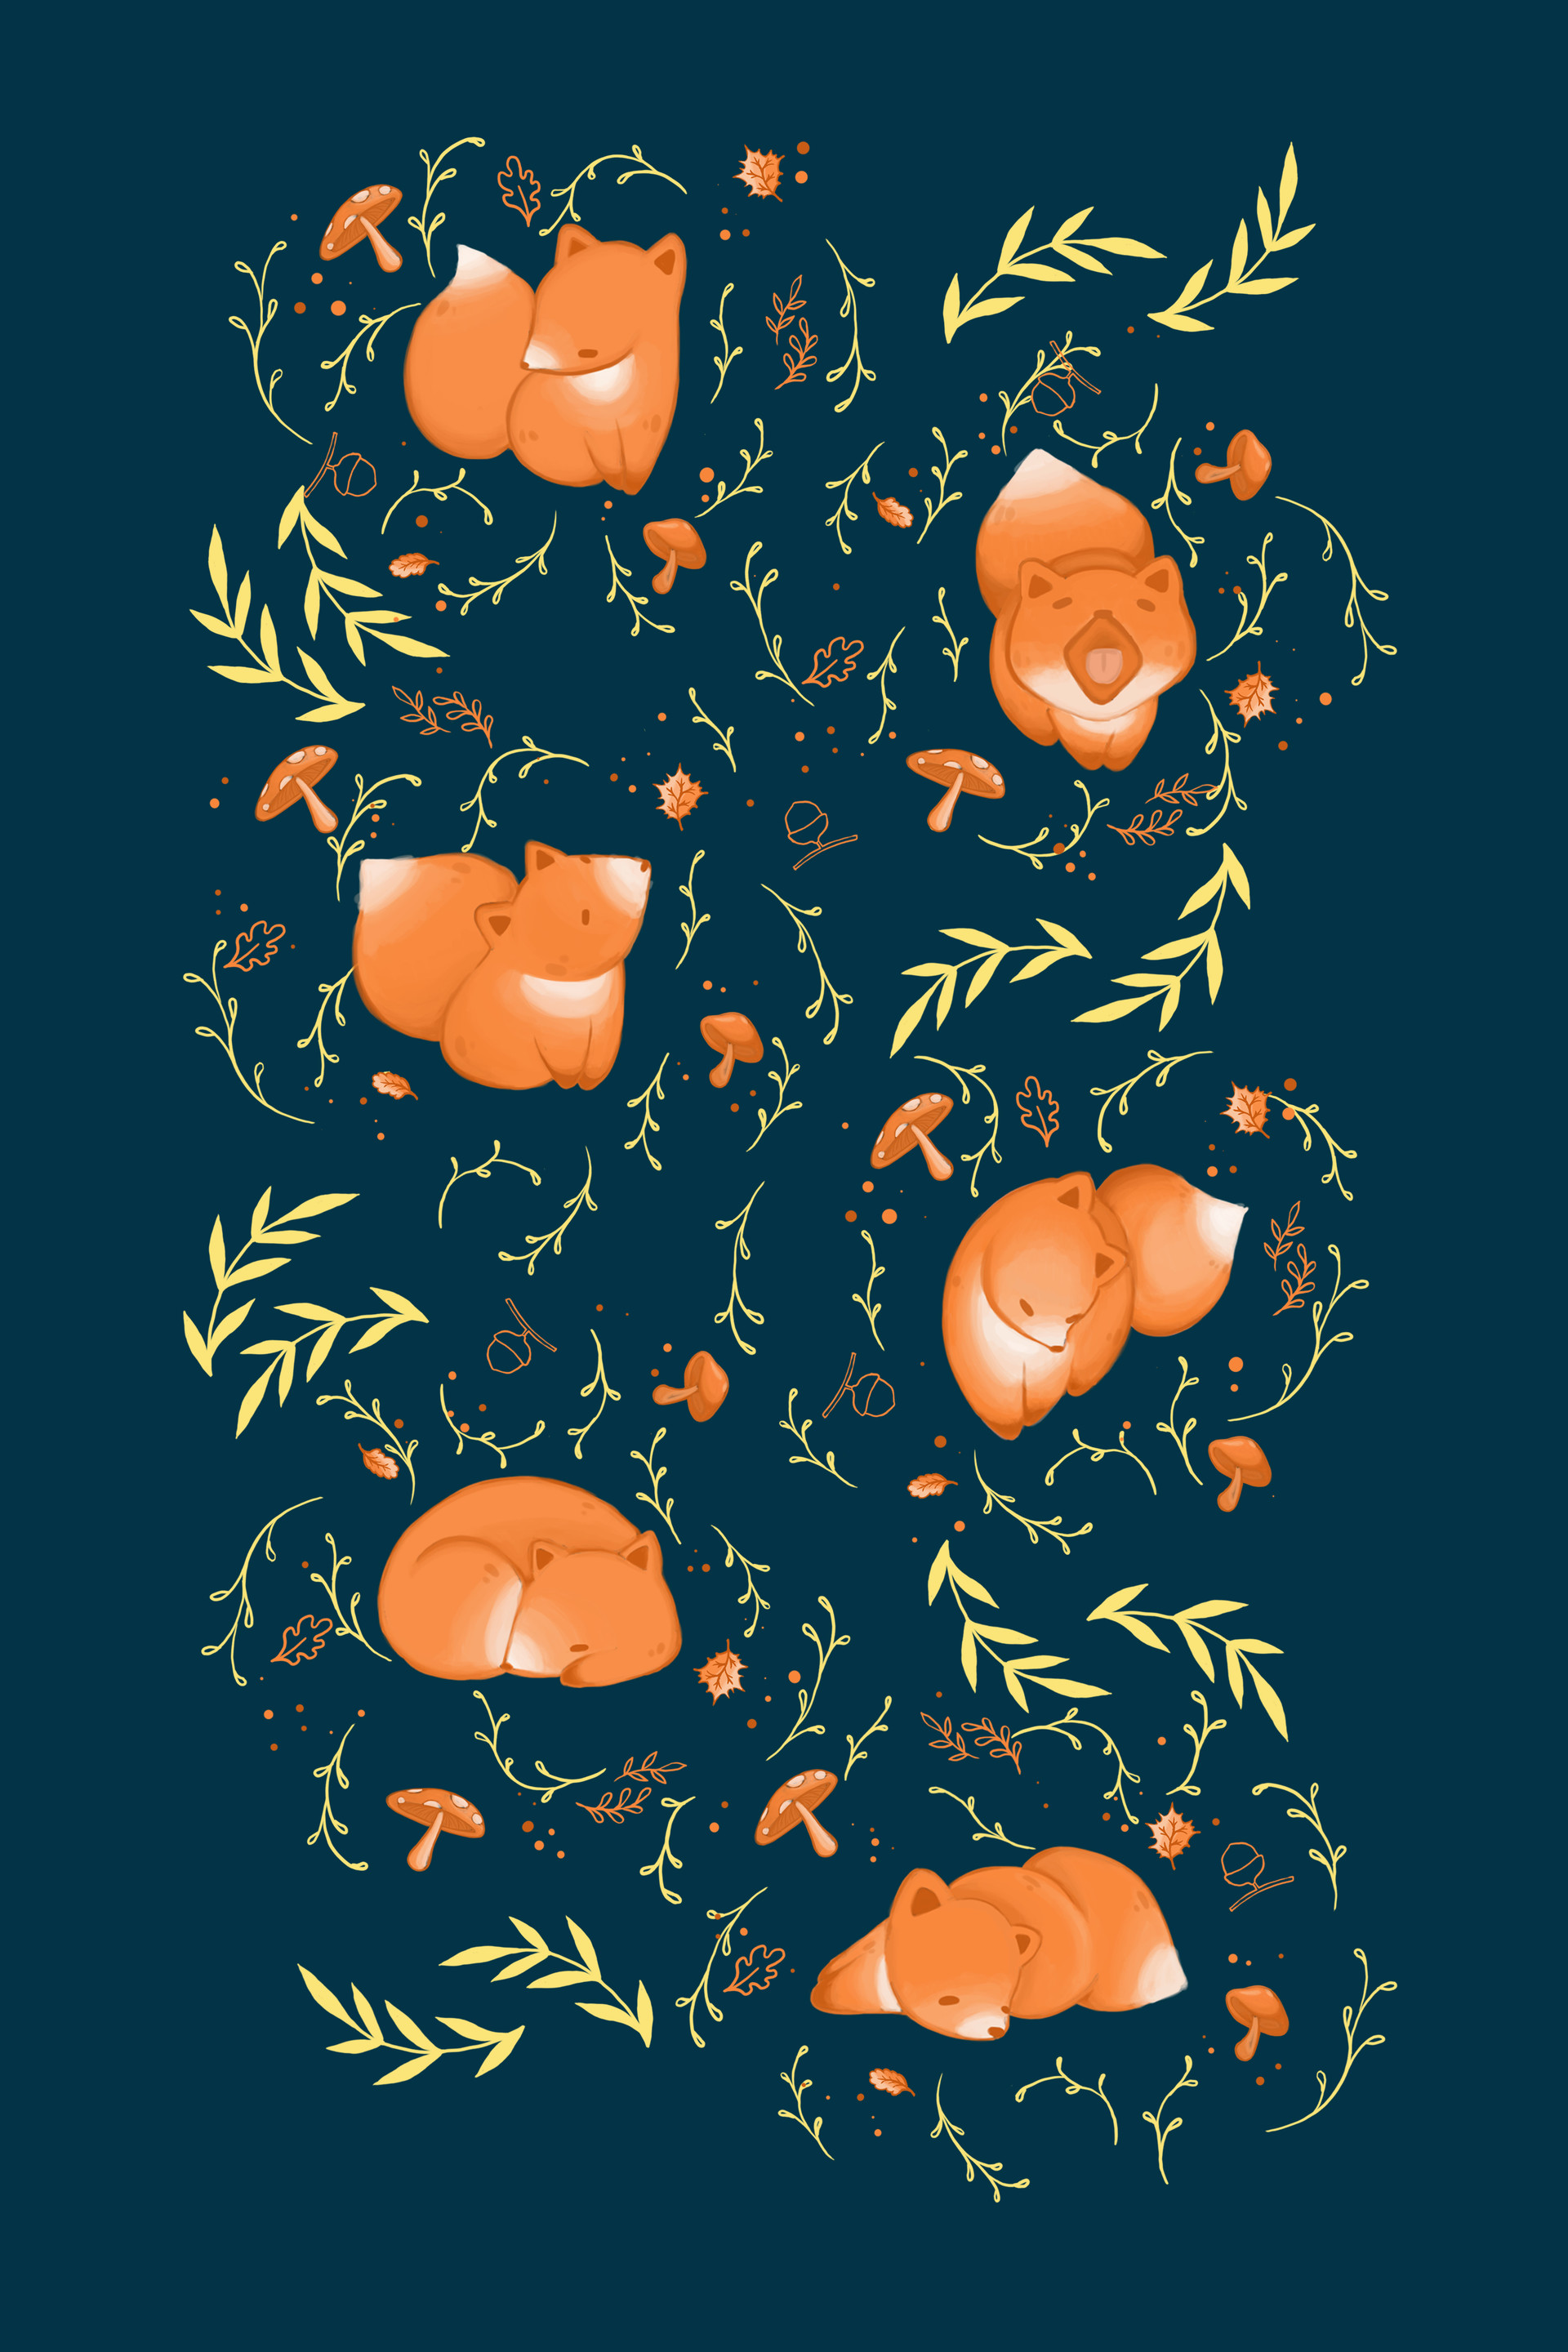 129595 download wallpaper Fox, Art, Leaves, Mashrooms, Acorns, Pattern, Branches screensavers and pictures for free